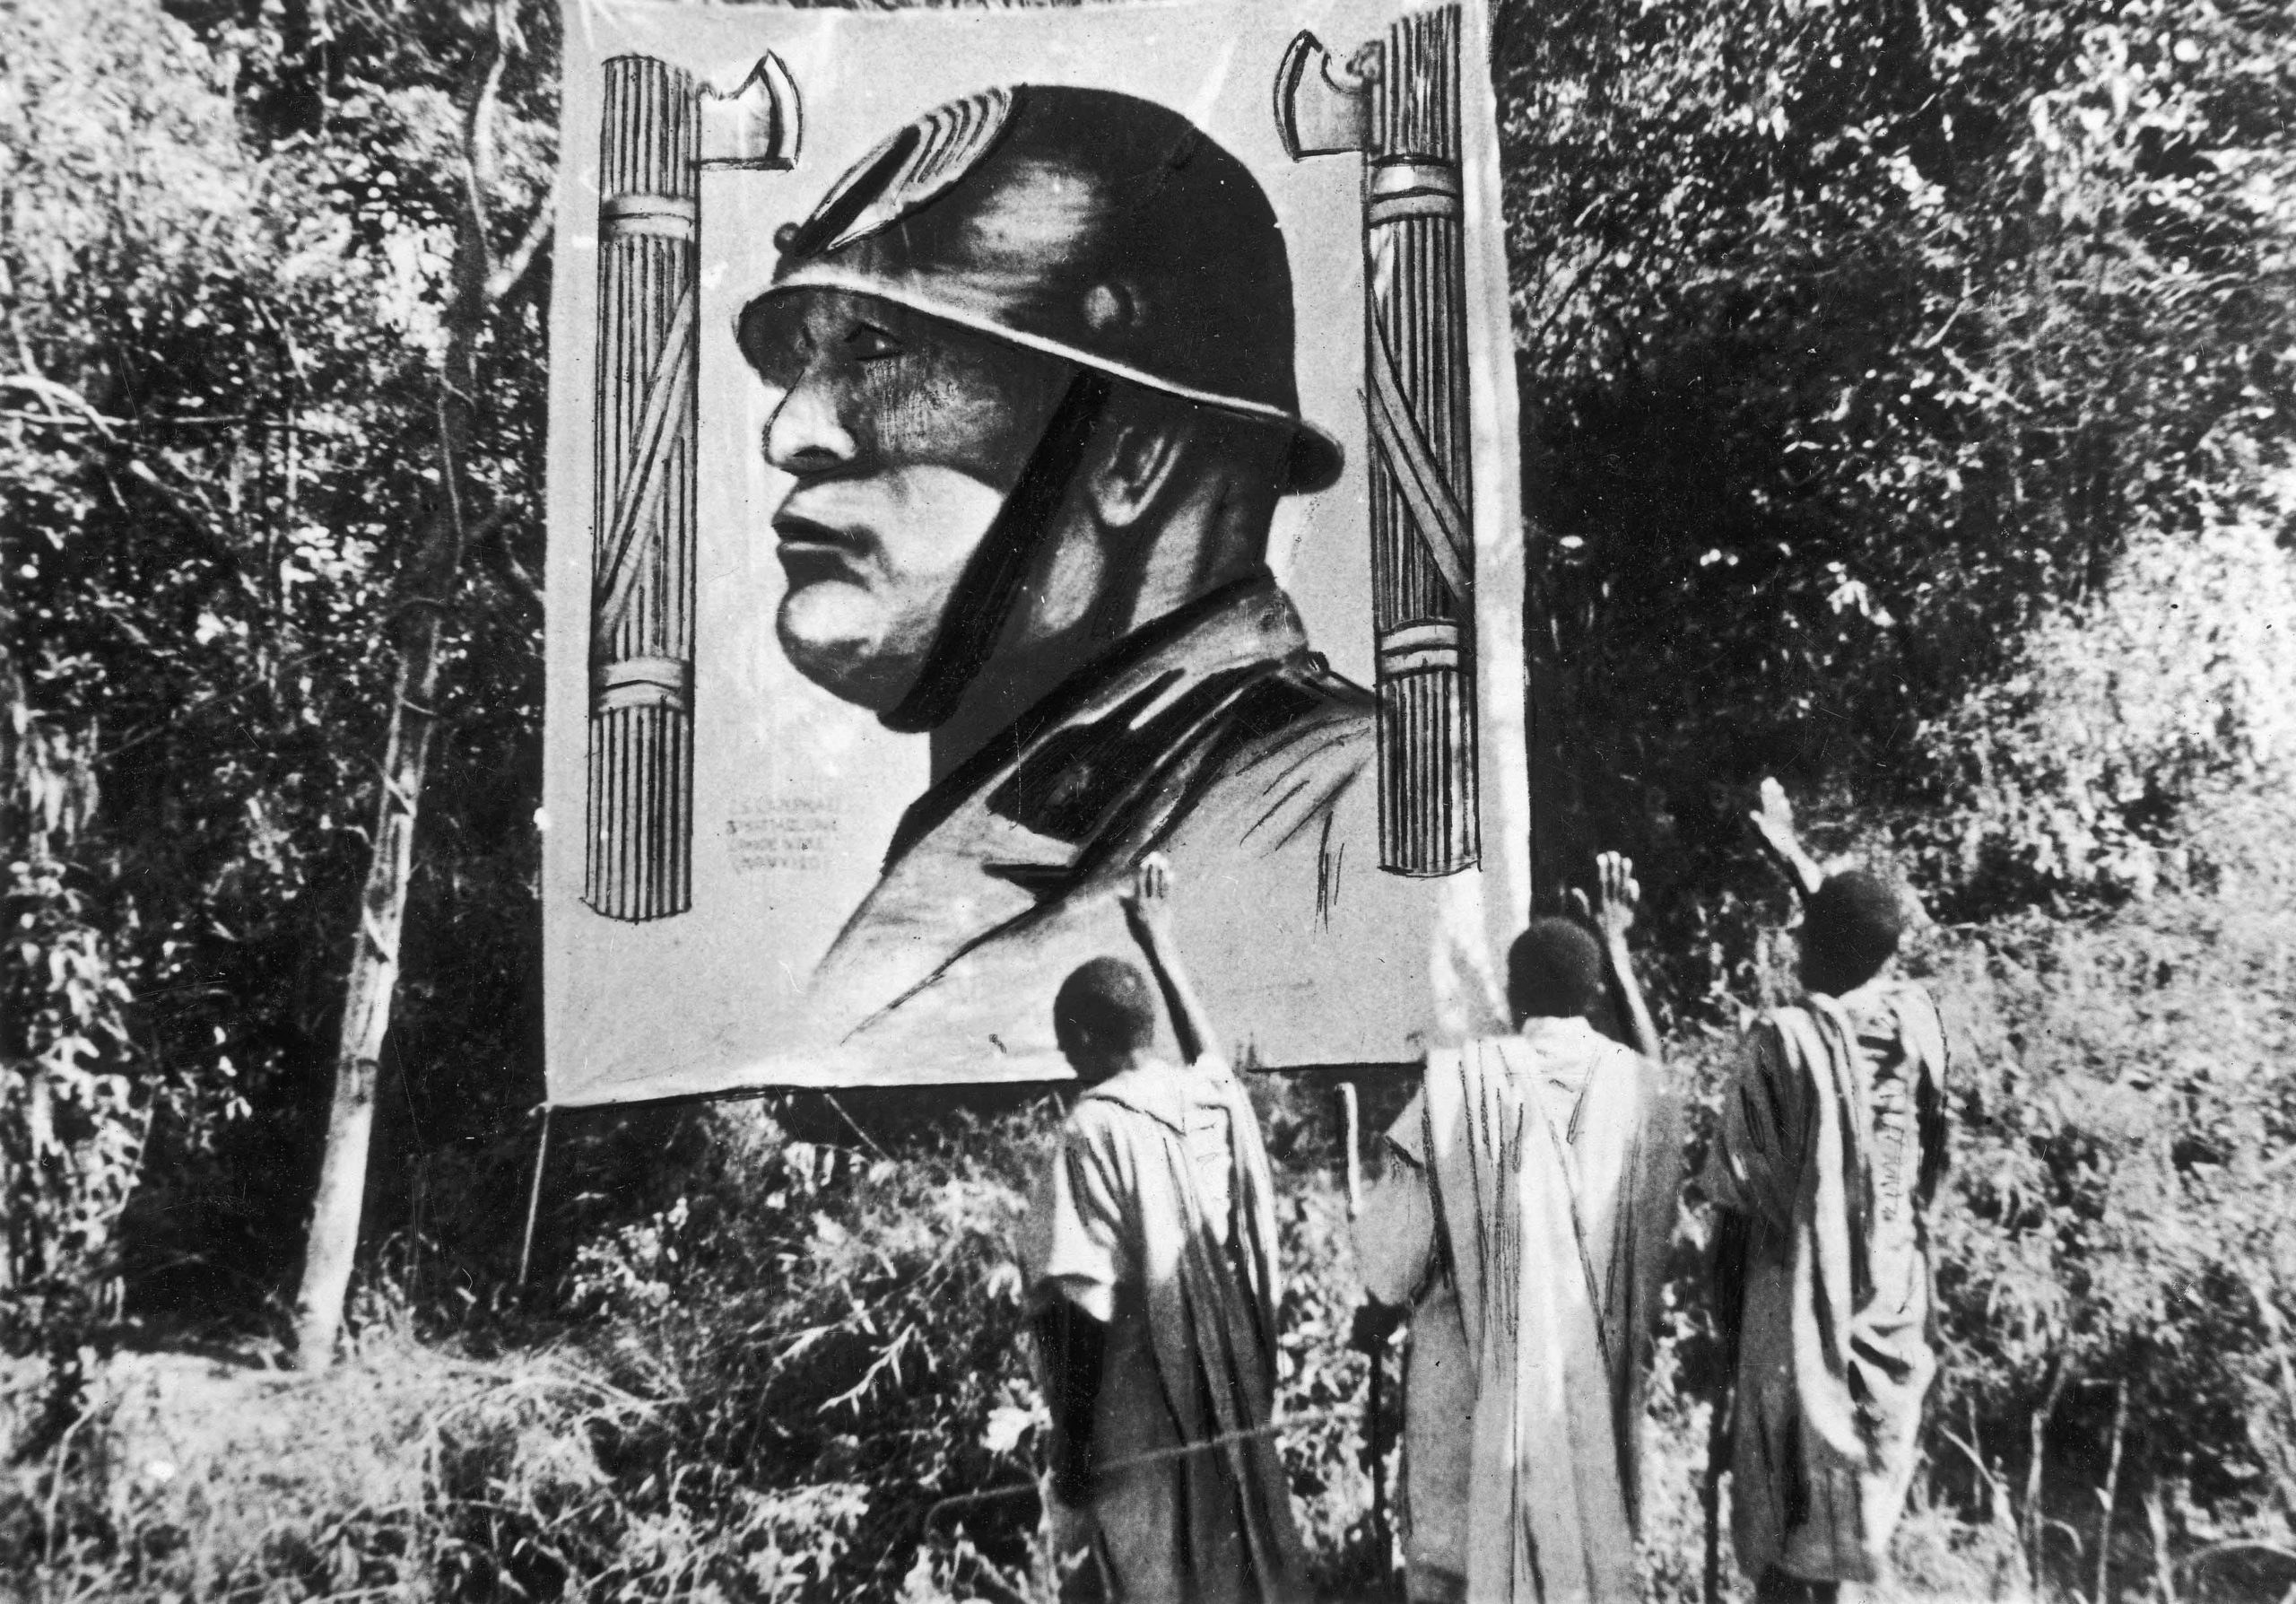 Saluting banner with bust of Mussolini between fasci, Mekelle, Italian East Africa (Ethiopia), 1935 (Archiwa Panstwowe, Poland)